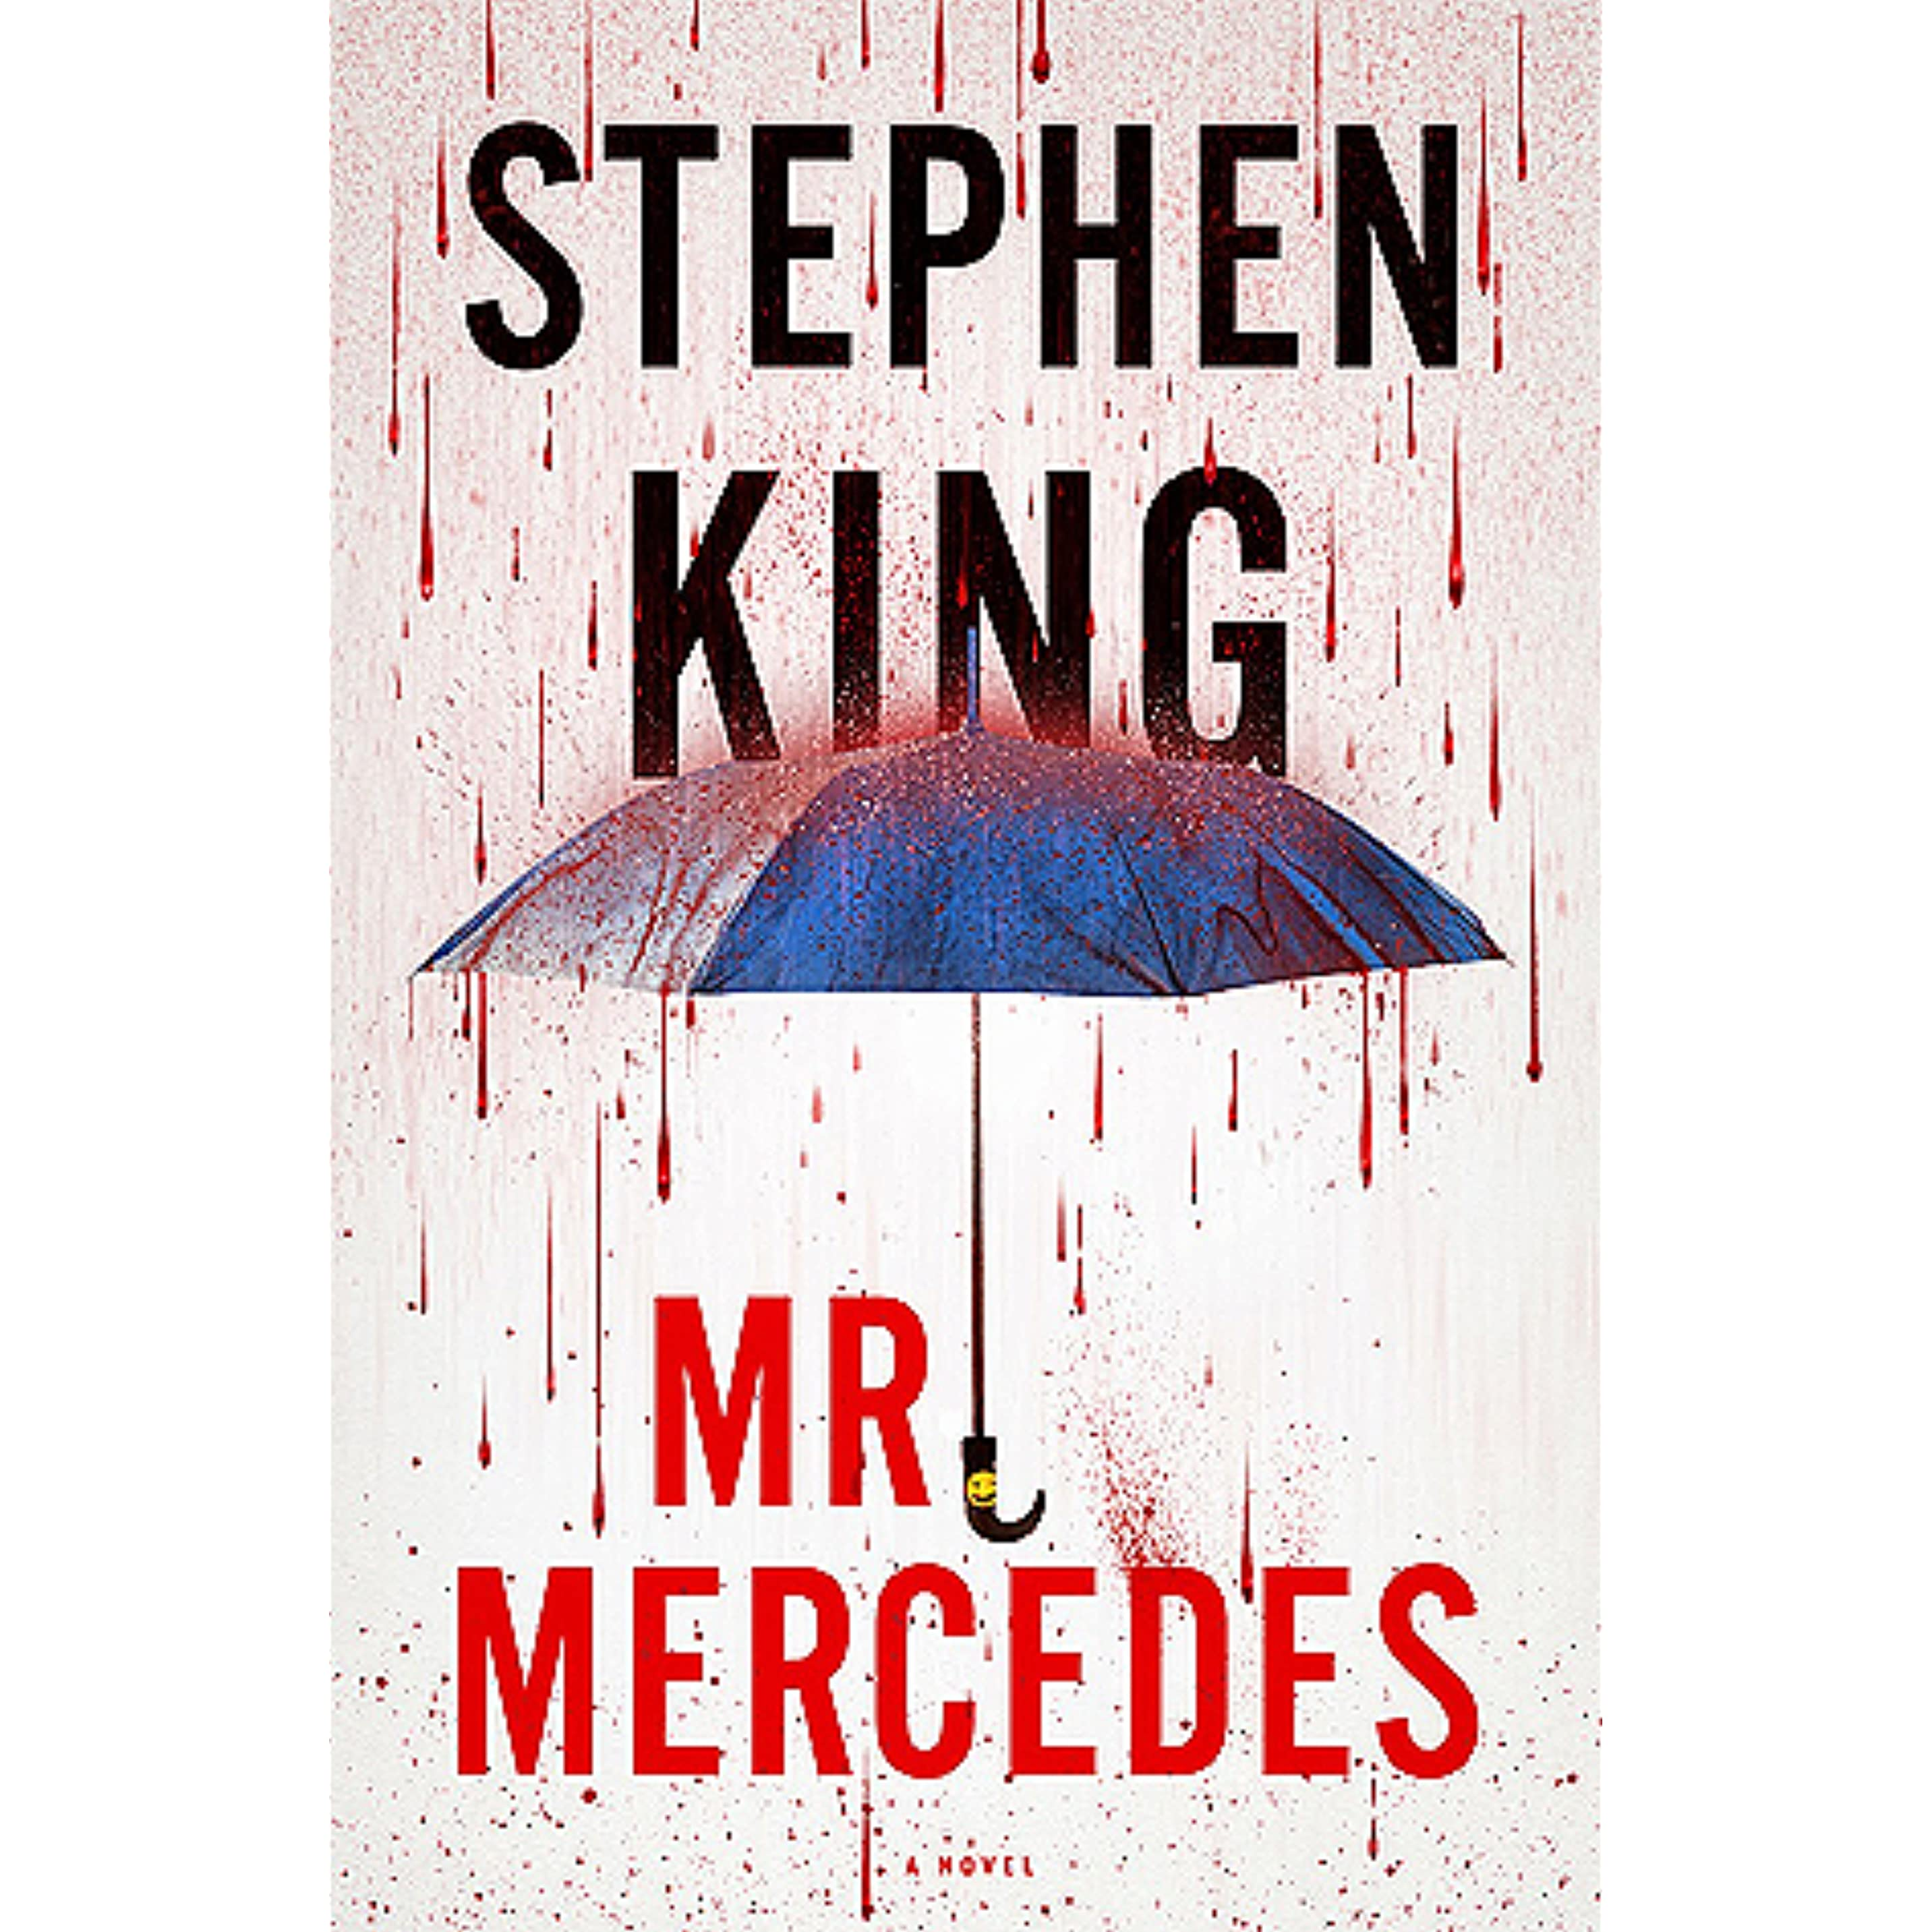 How To Make A Book Cover Look Old And Worn ~ Mr. mercedes bill hodges trilogy #1 by stephen king